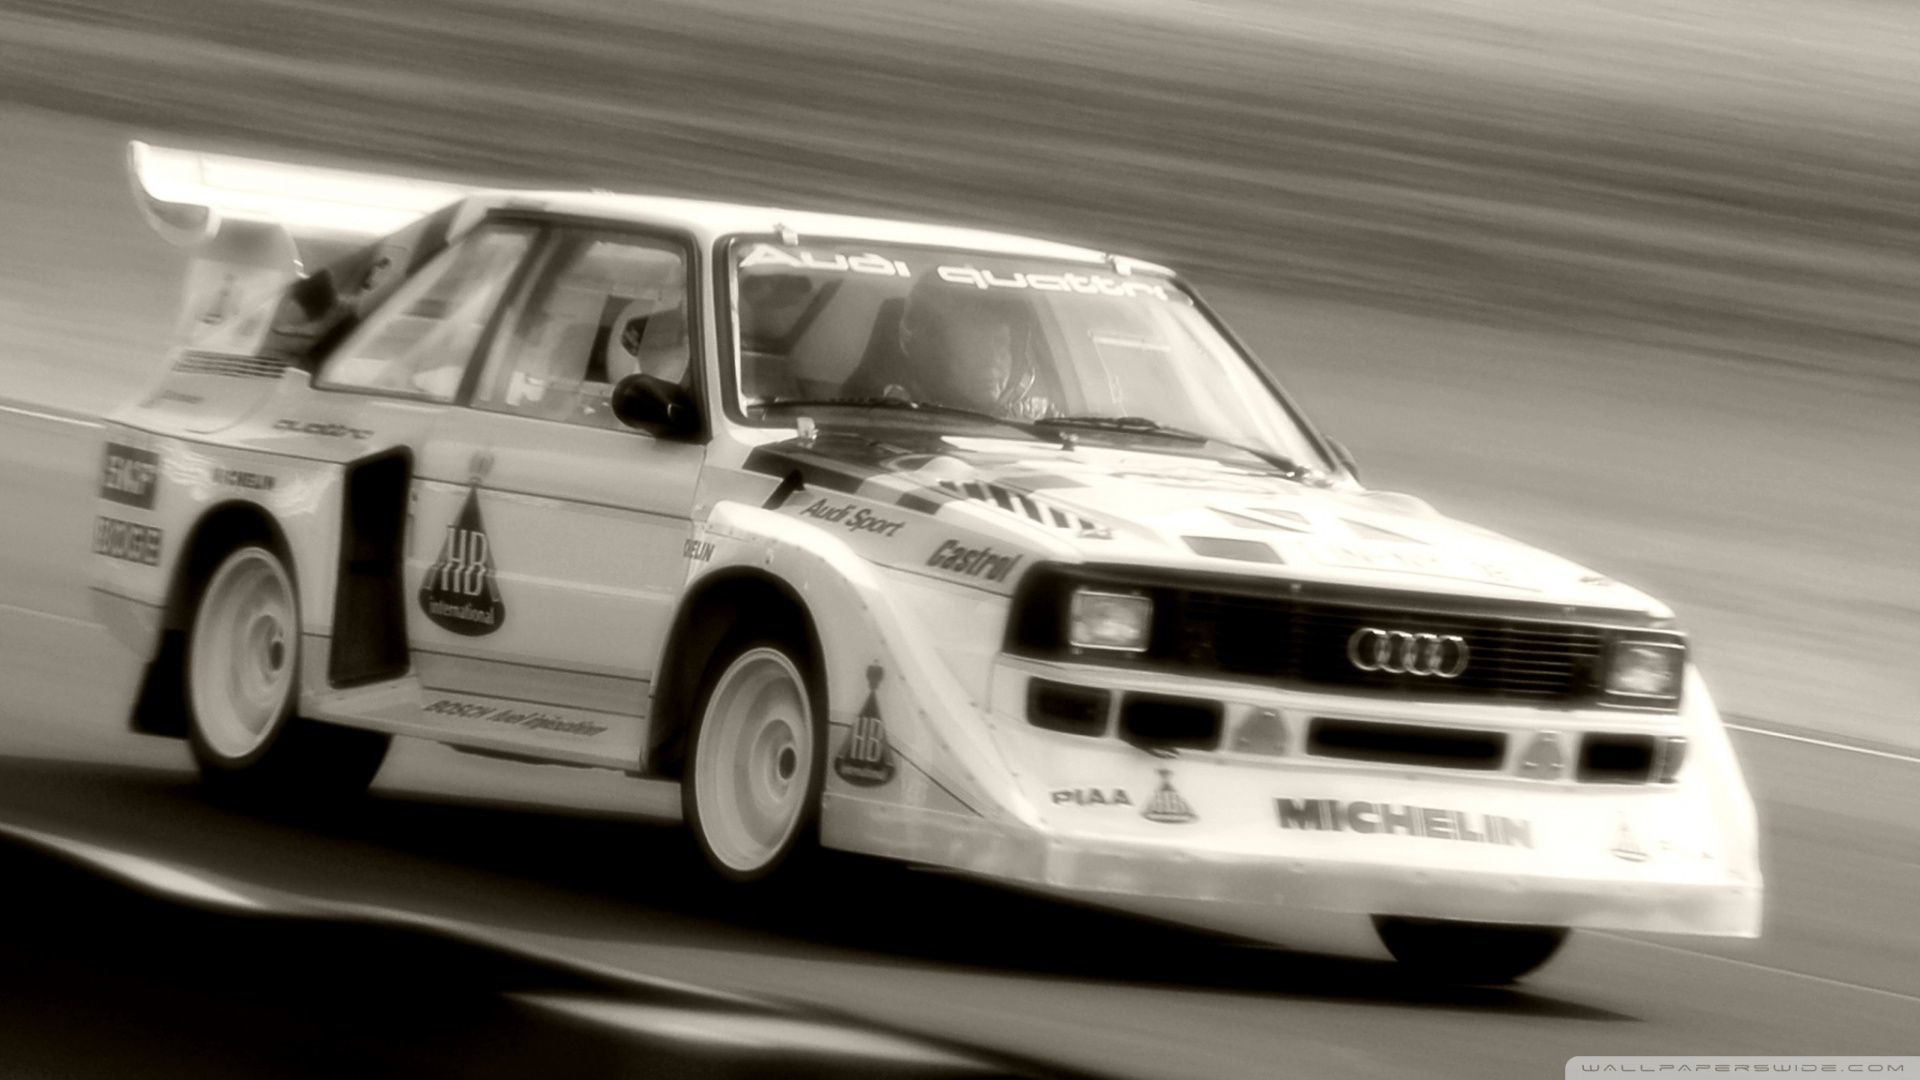 1920x1080 Audi S1 Quattro Rally Car 1 Hd Desktop Wallpaper De Rallye